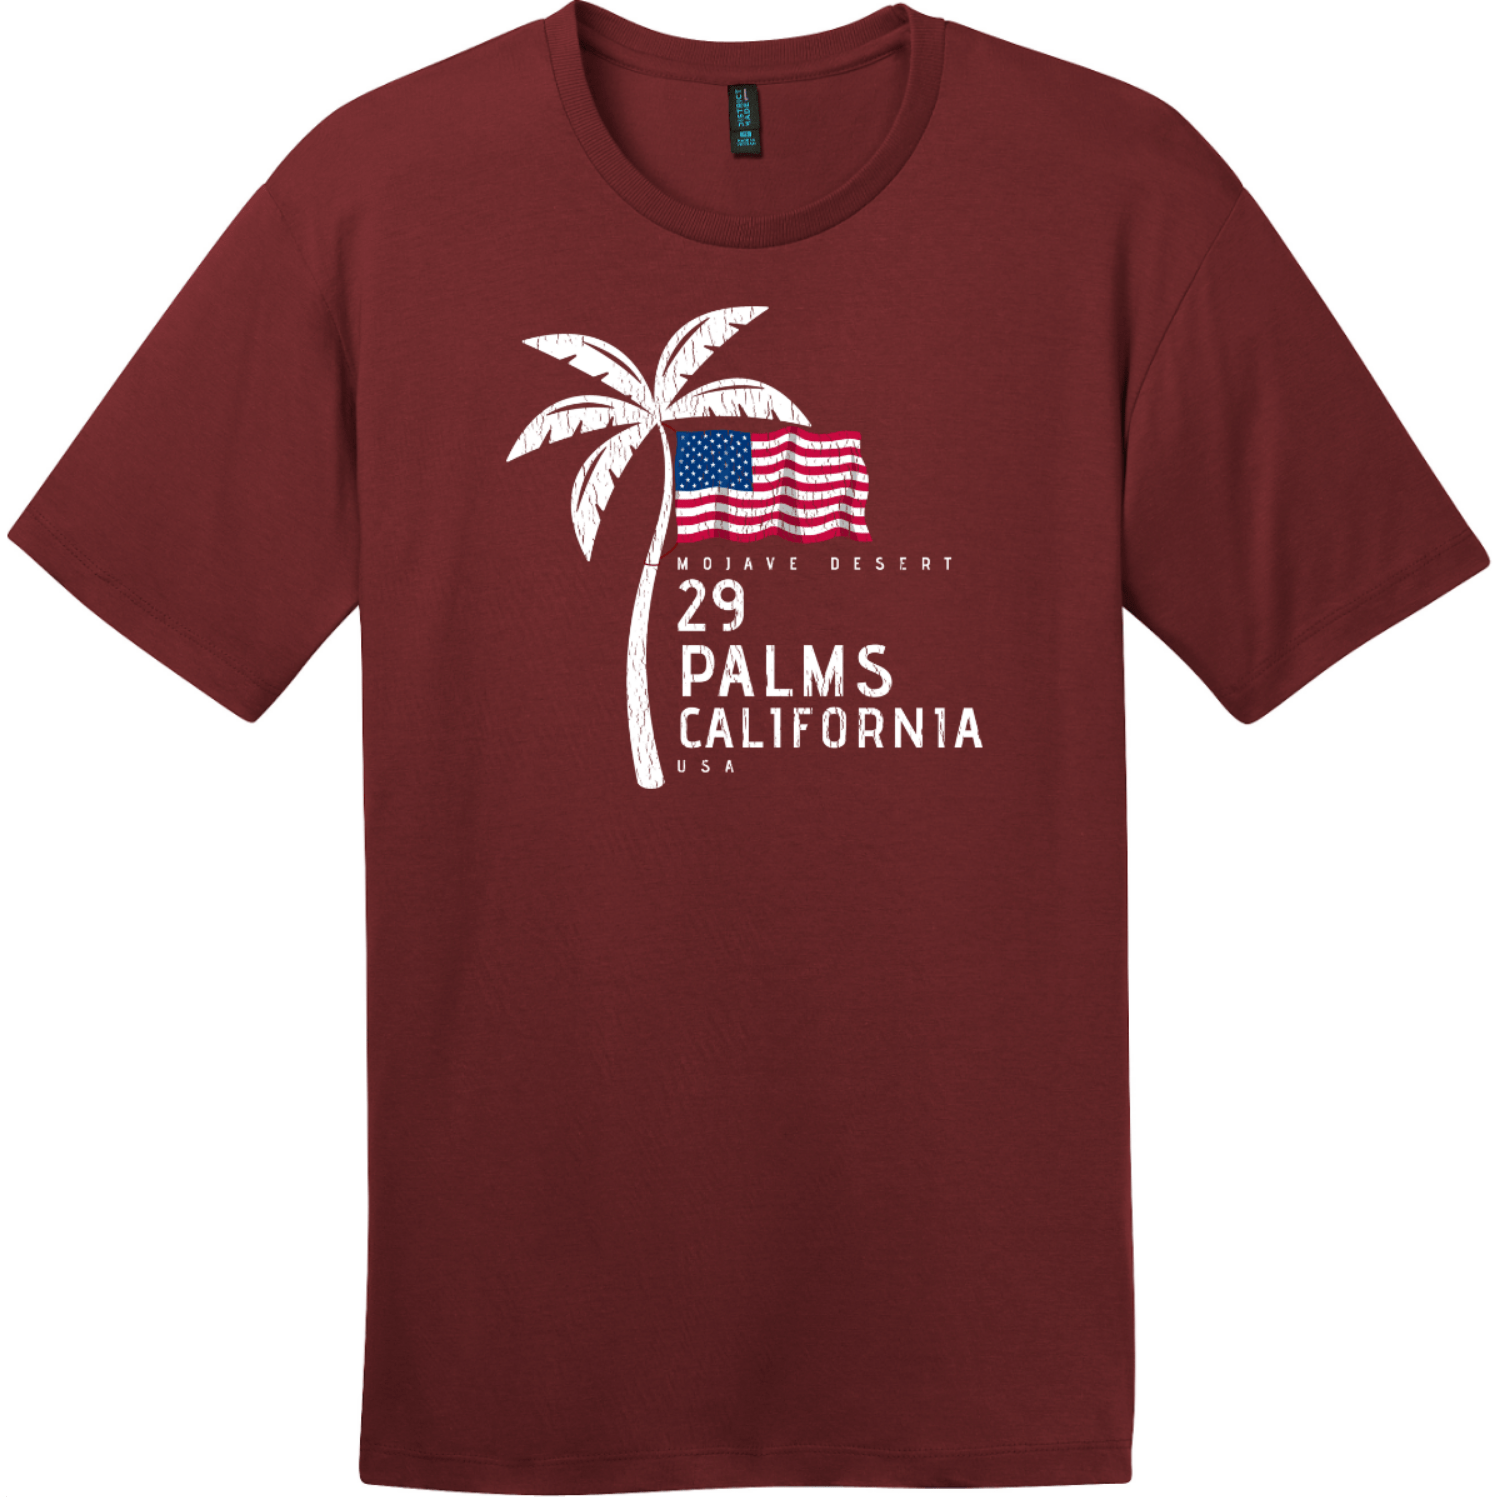 29 Palms California American Flag Palm Tree T-Shirt Sangria District Perfect Weight Tee DT104